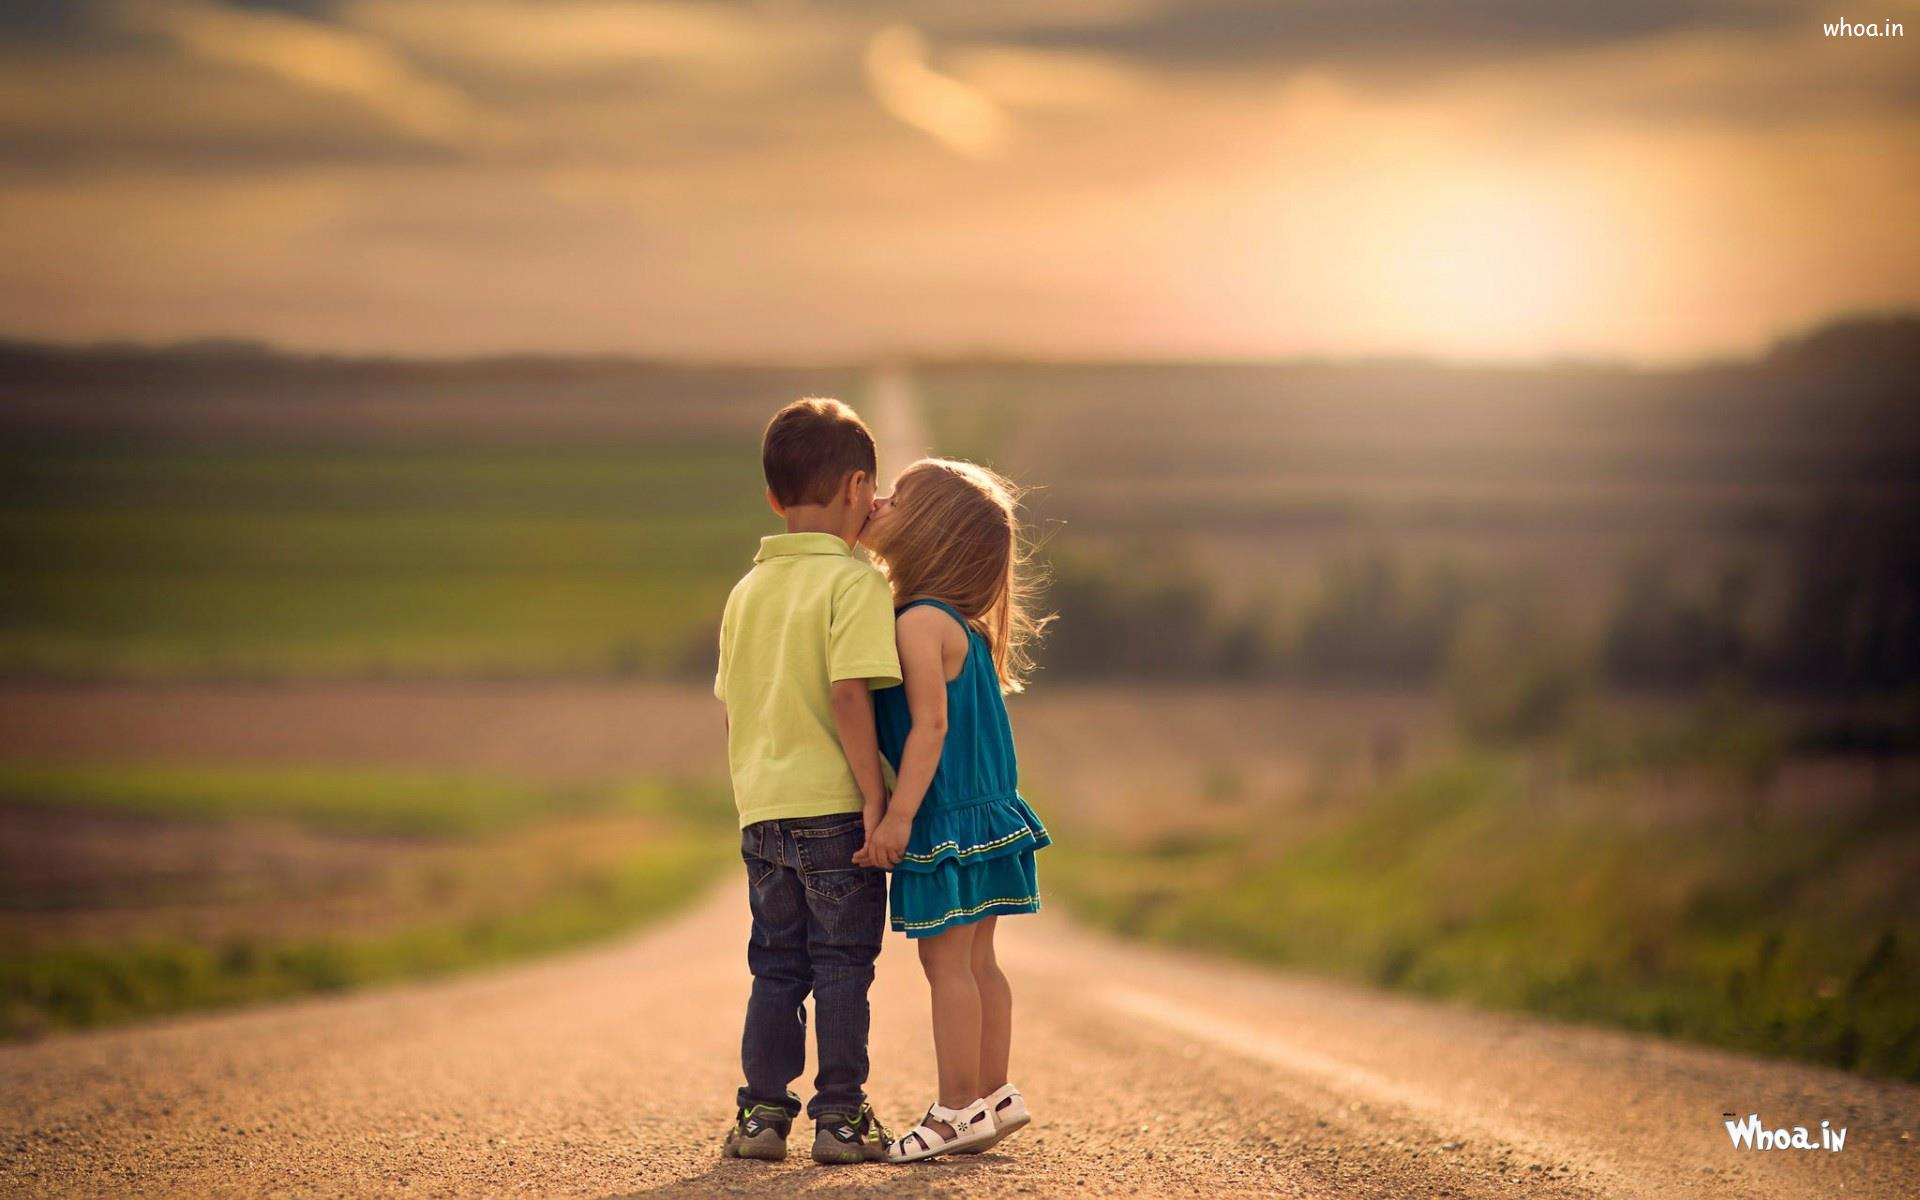 baby girl kiss to boy on the road hd kids kiss wallpaper